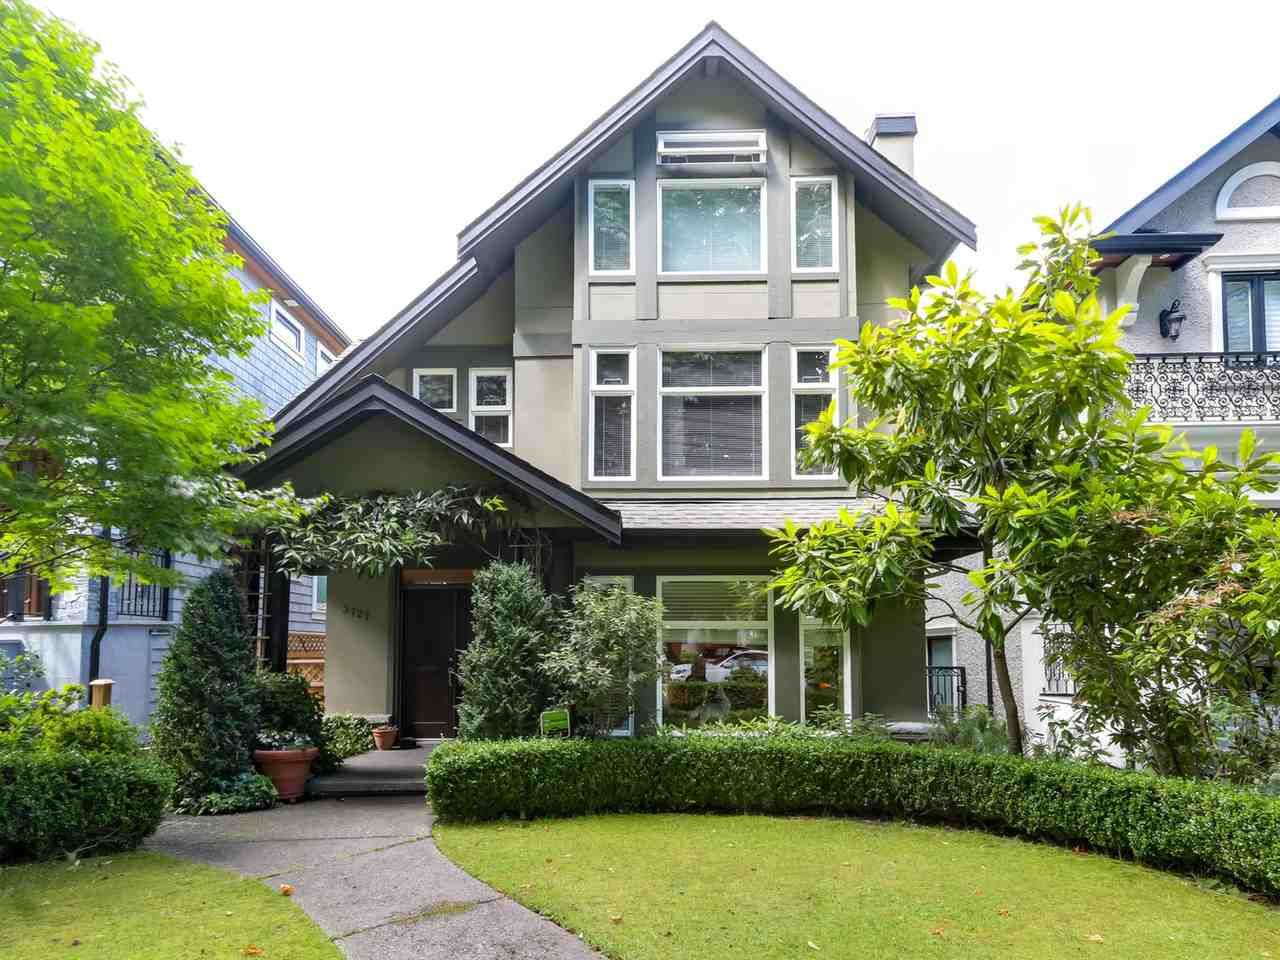 Main Photo: 3727 W 22ND Avenue in Vancouver: Dunbar House for sale (Vancouver West)  : MLS®# R2079787